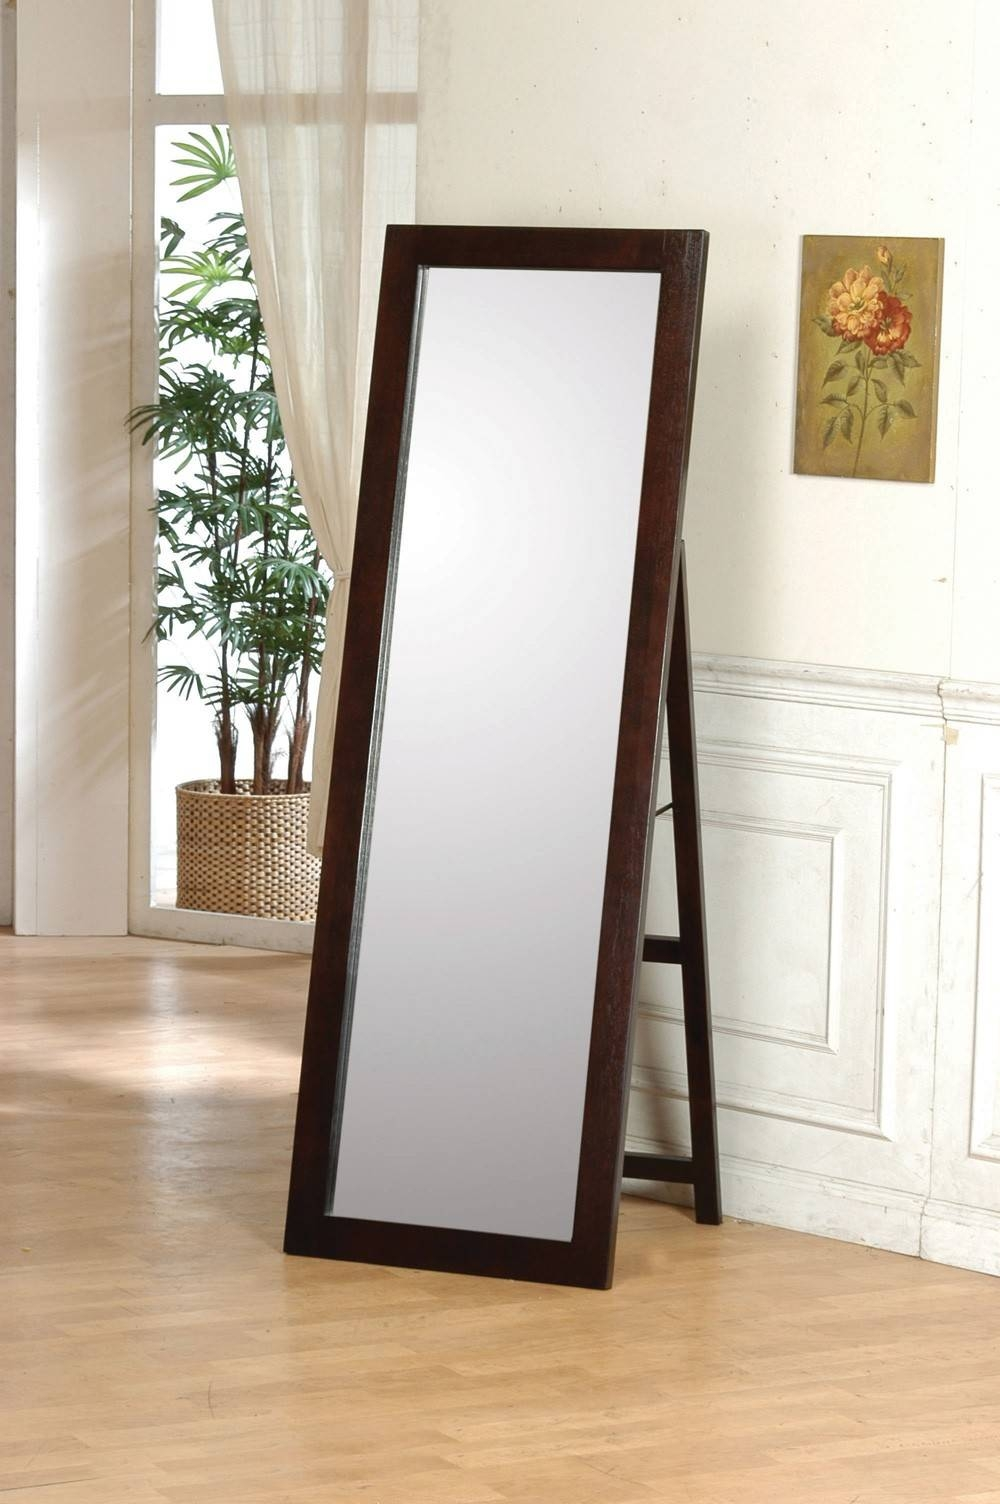 Types And Uses Of Floor Mirrors within Big Floor Standing Mirrors (Image 15 of 15)